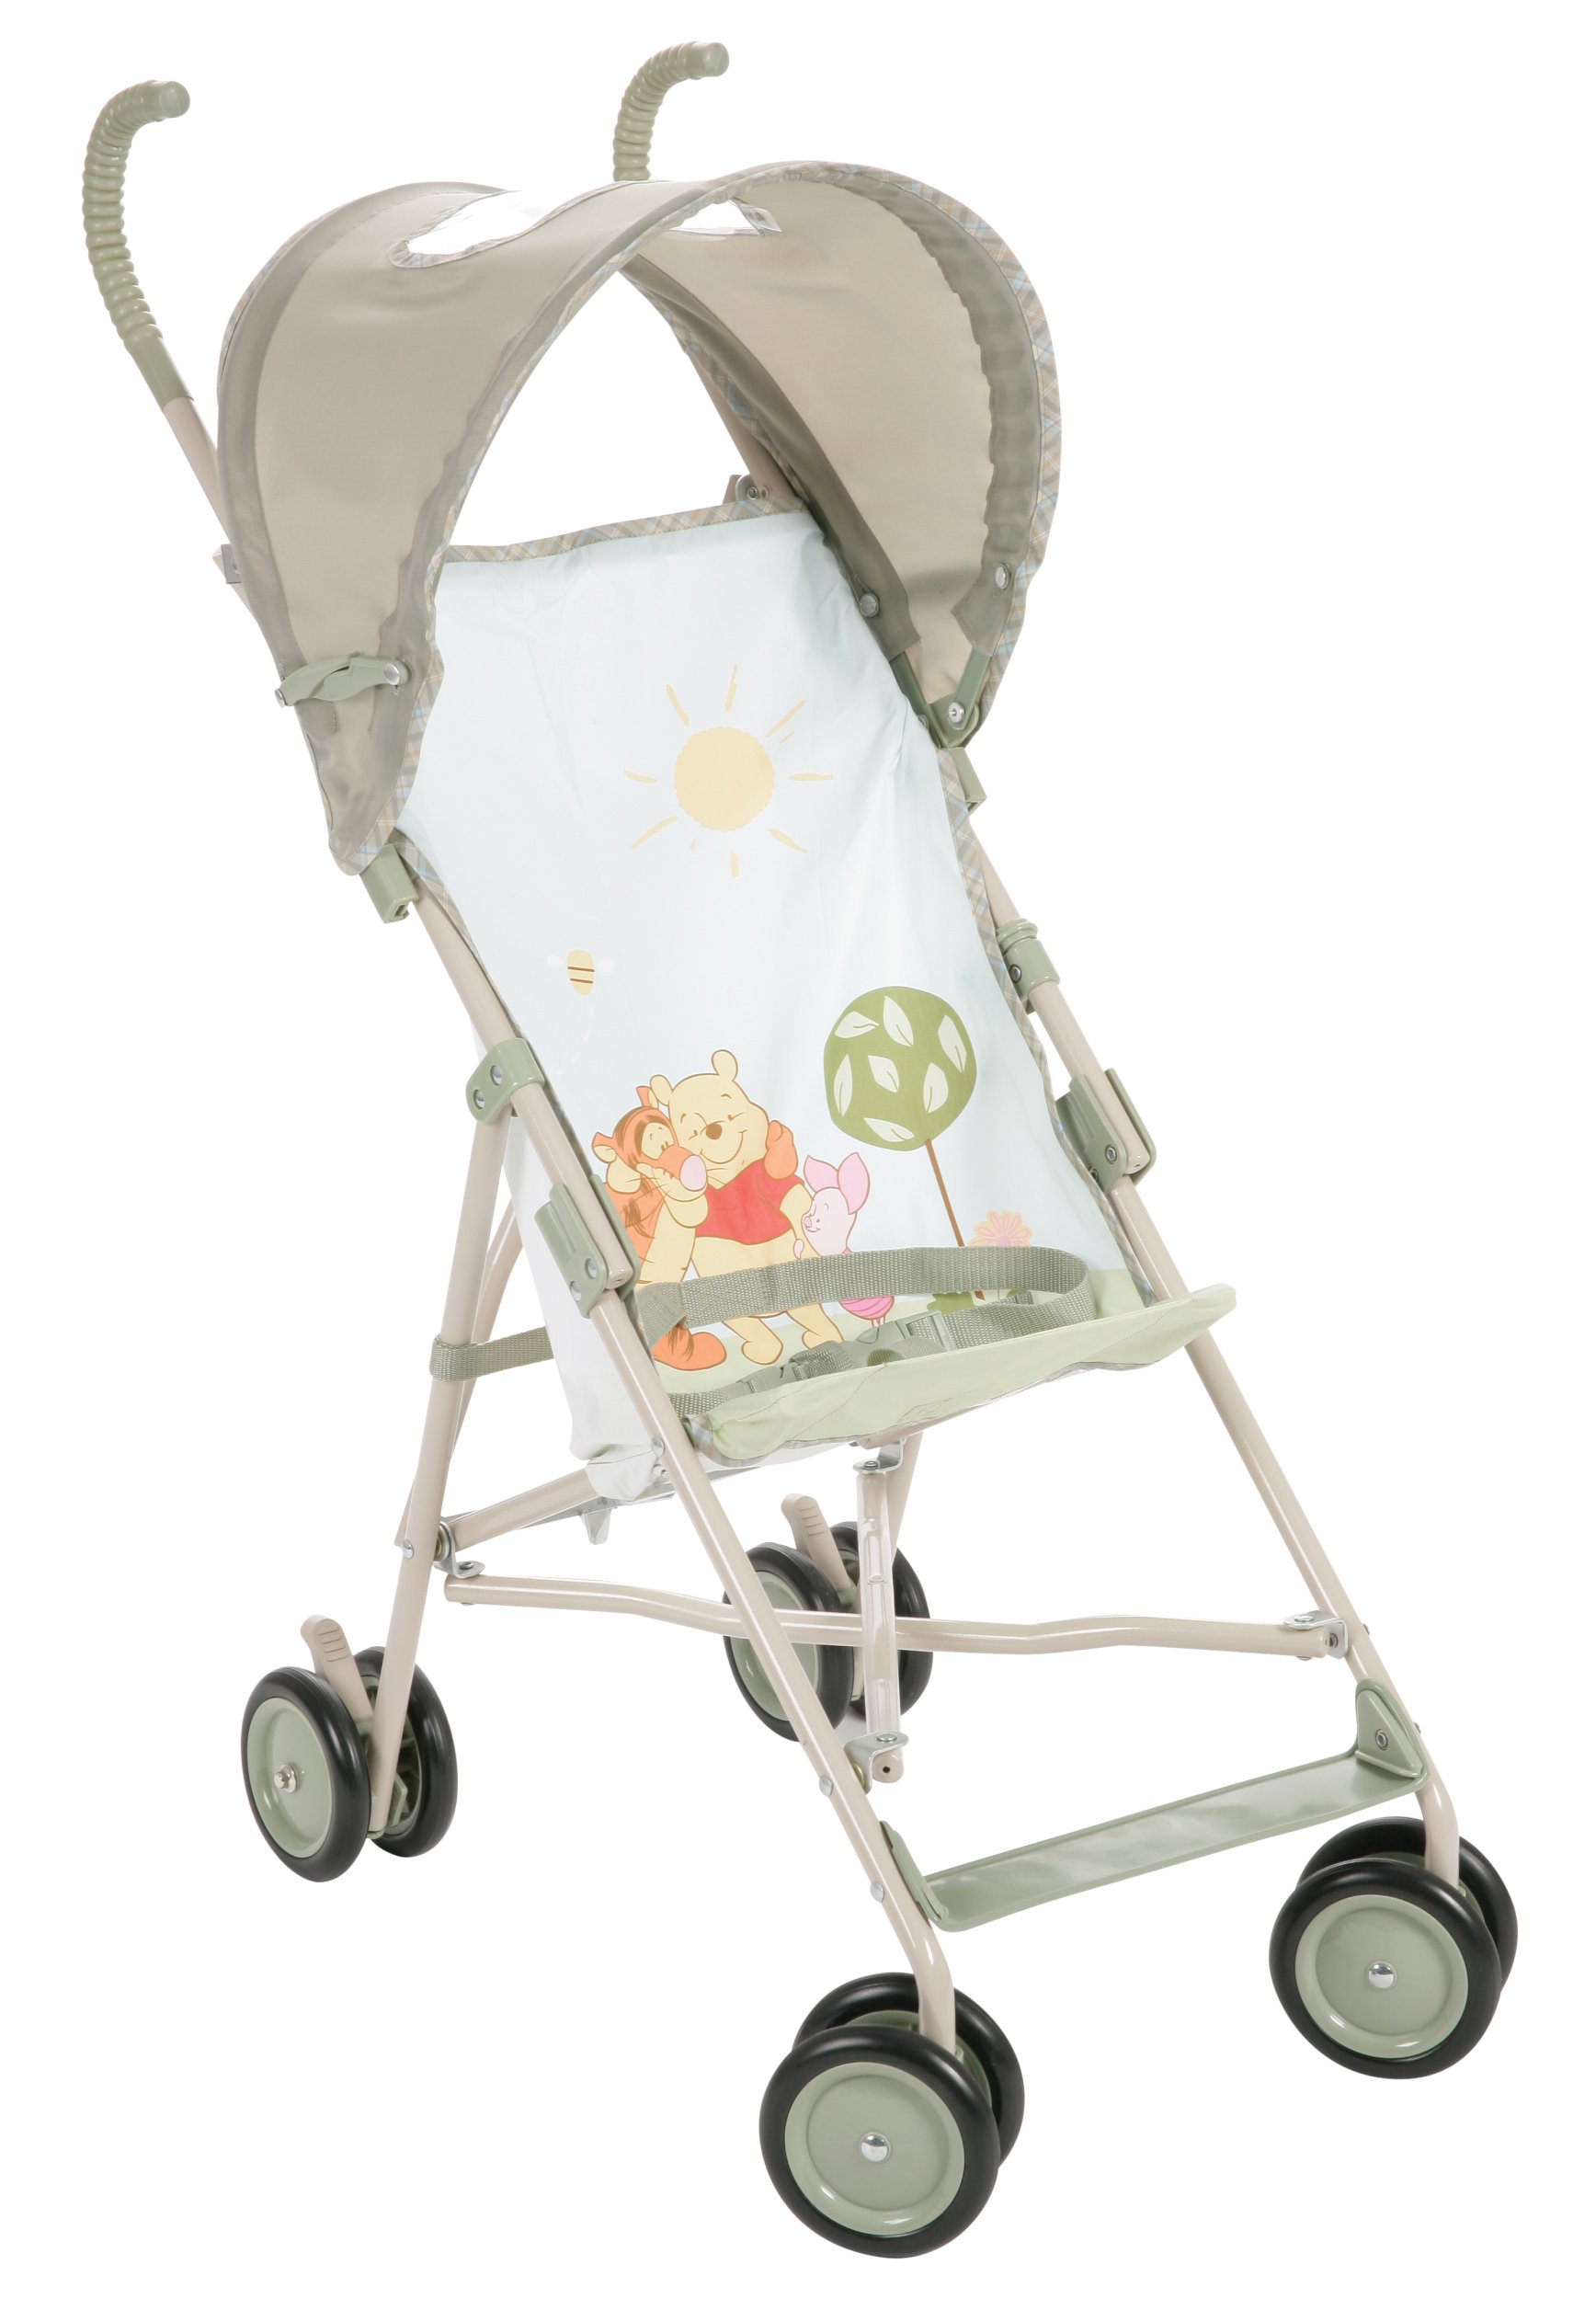 Disney Baby Umbrella Stroller with Canopy Featuring Pooh Characters, Ambrosia (Discontinued by Manufacturer)